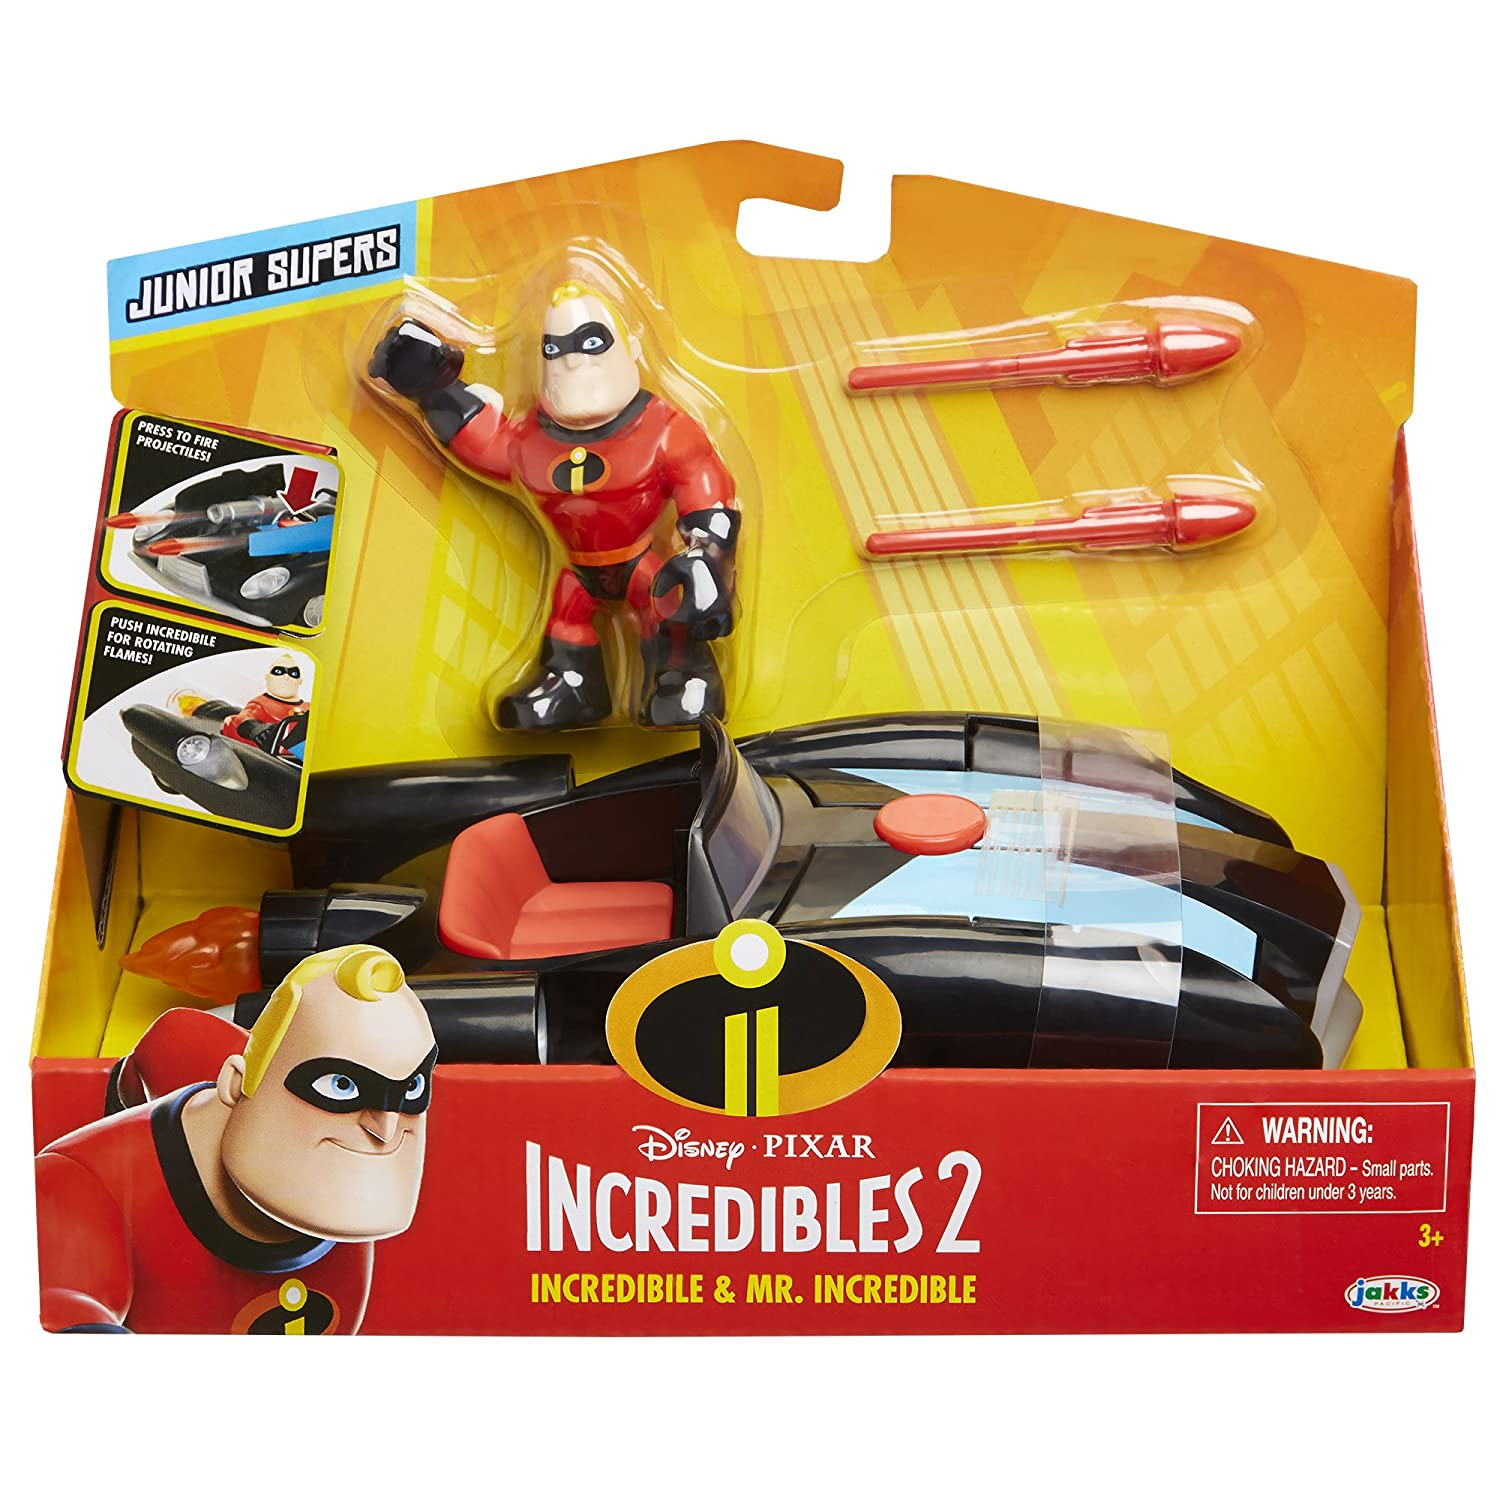 cbc5f879e32 Amazon.com: The Incredibles 2 Incredibile Car & Mr. Incredible Junior  Supers Action Figure Play Set: Toys & Games